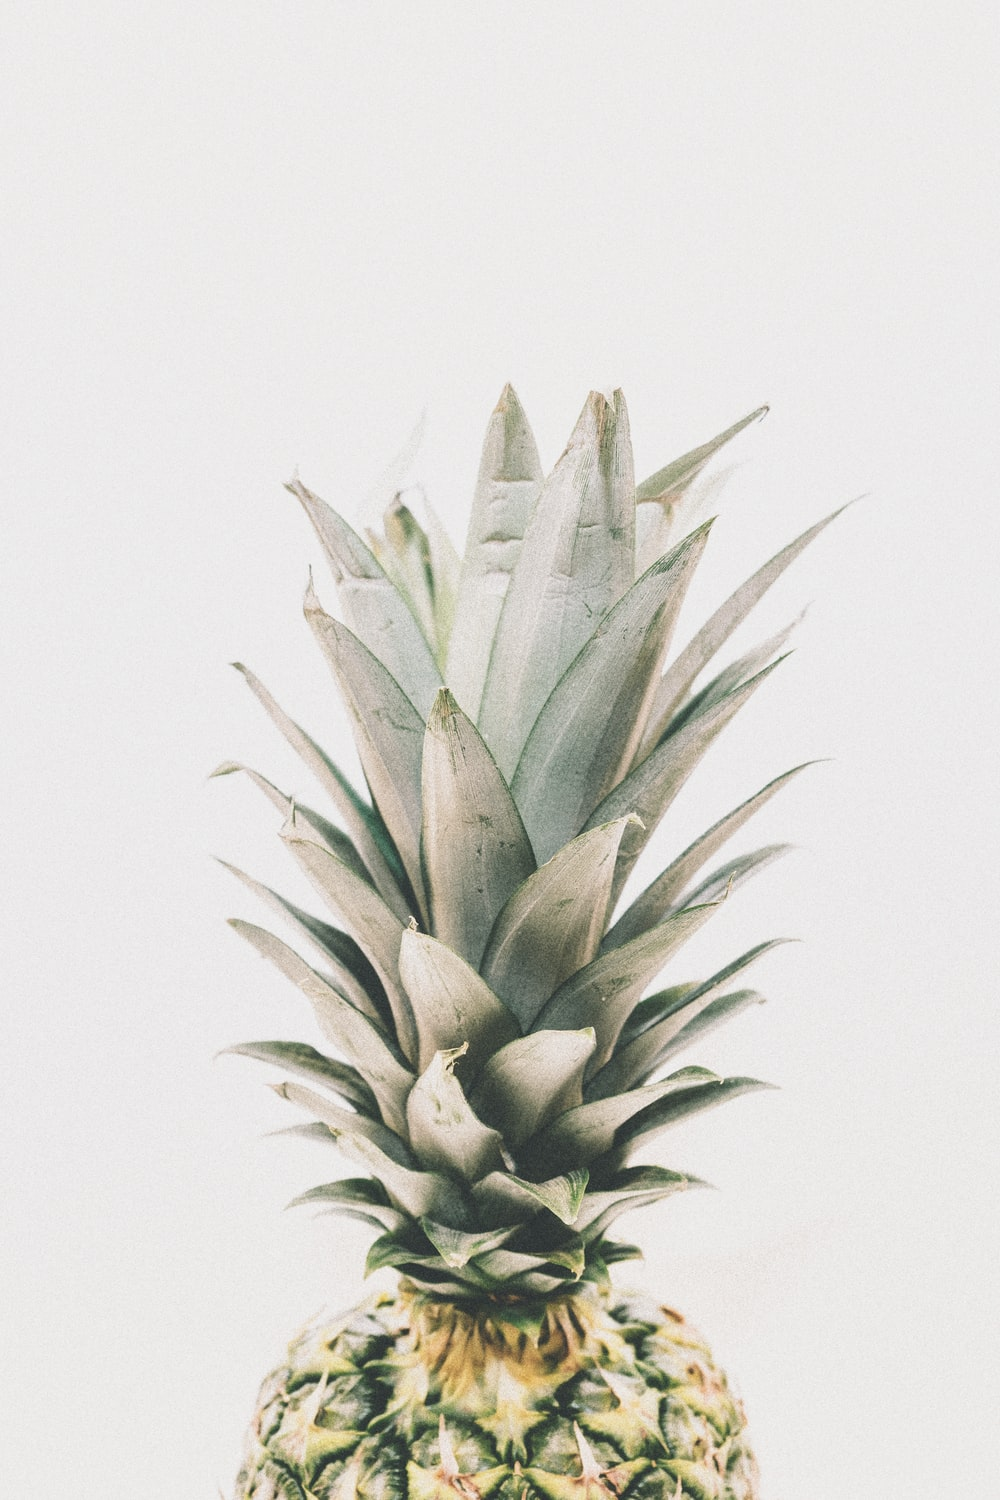 green pineapple close-up photography